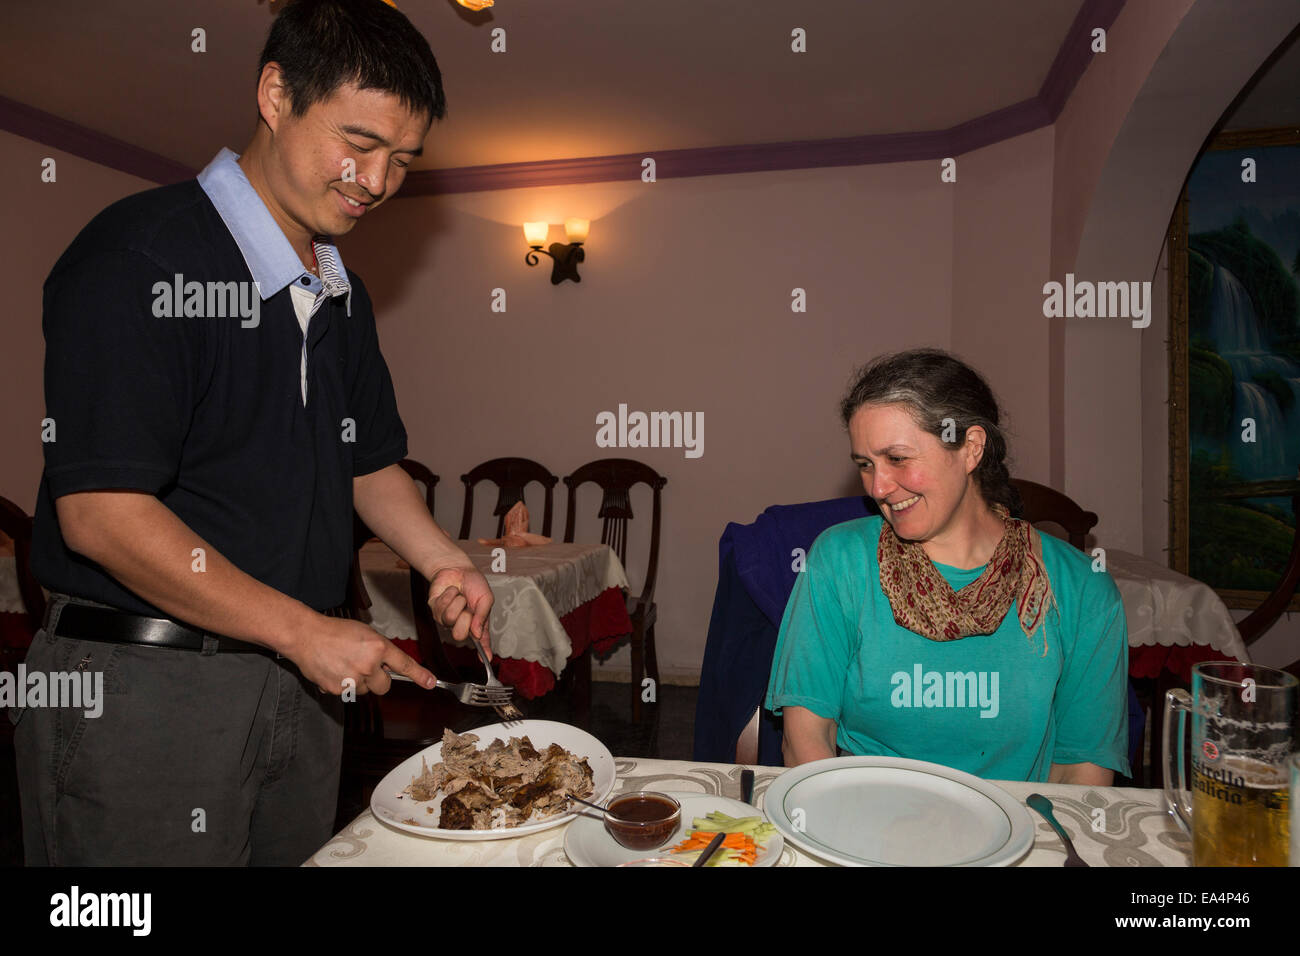 Chinese waiter serving crispy duck to diner in restaurant, Puerto del Carmen, Lanzarote, Canary Islands, Spain - Stock Image